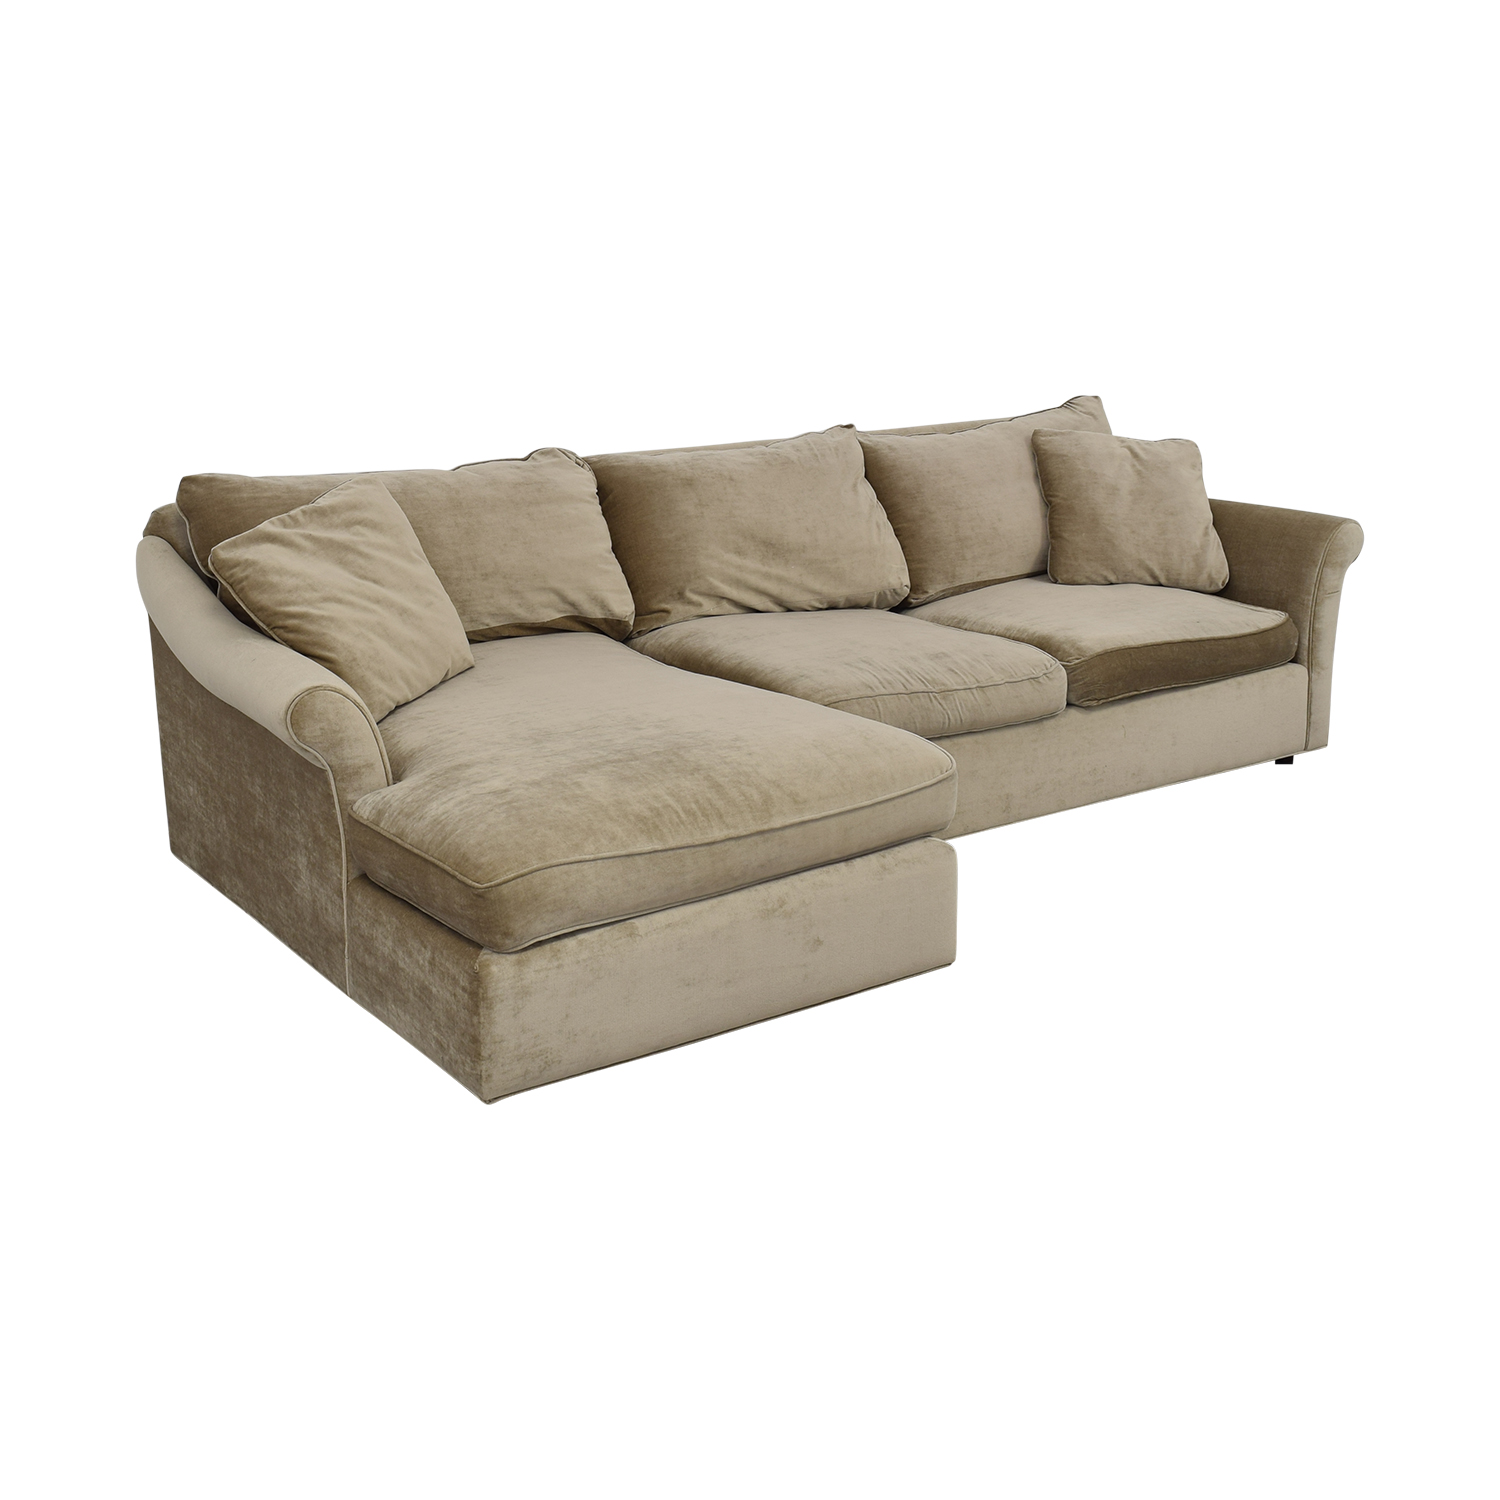 shop ABC Carpet & Home ABC Carpet & Home Winged Arm Sectional Sofa online